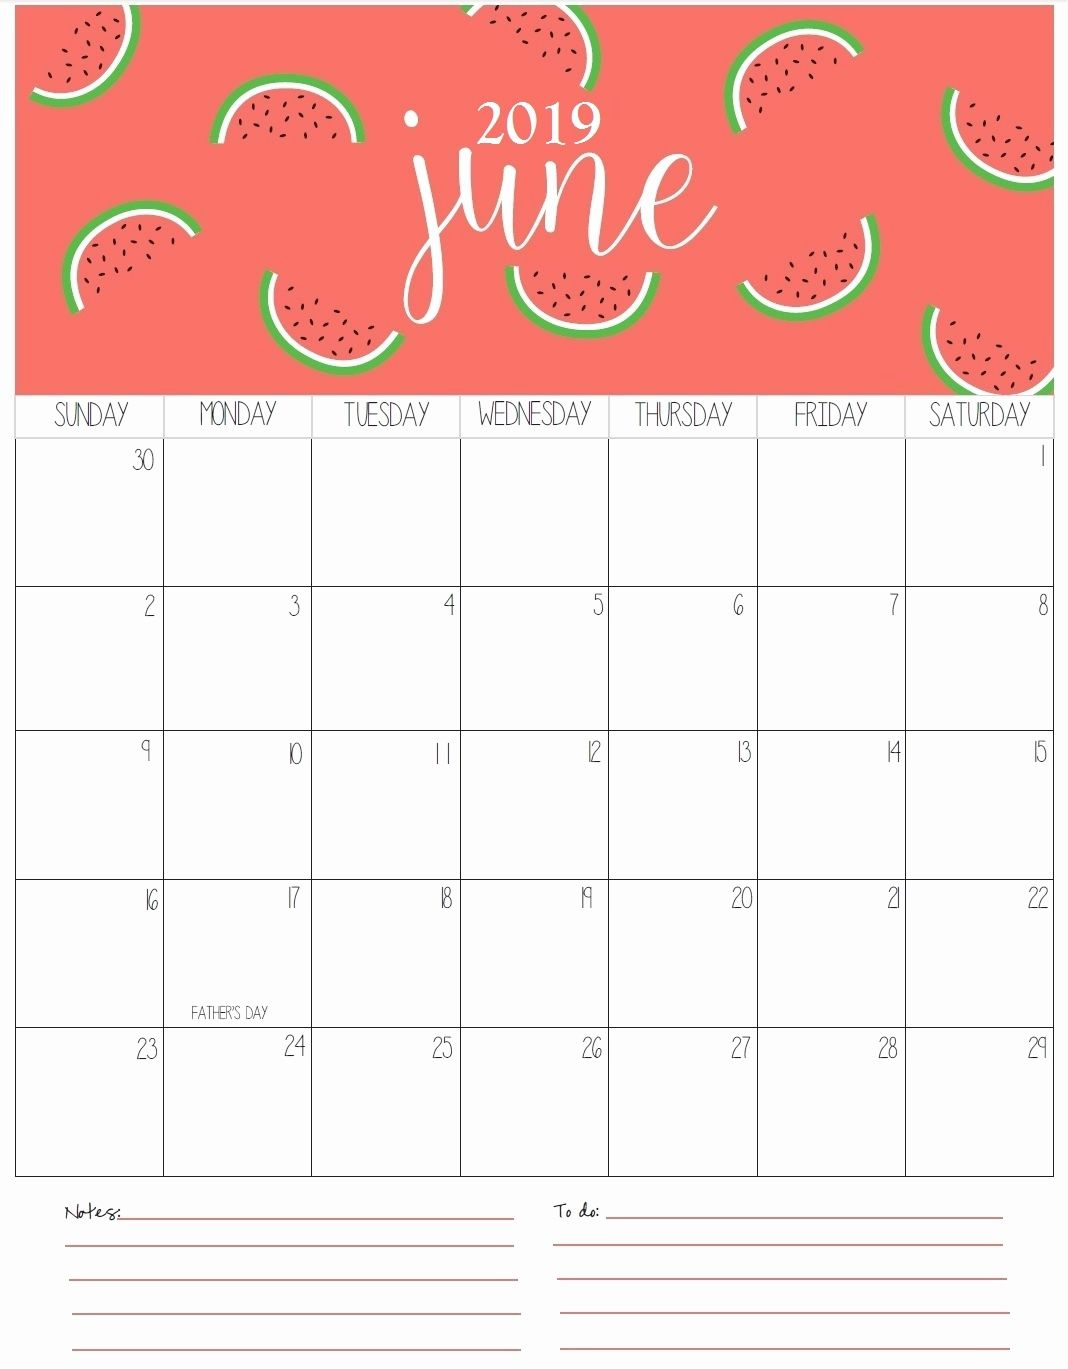 image about Printable June titled calendar june 2019 printable create a calendarjune 2019